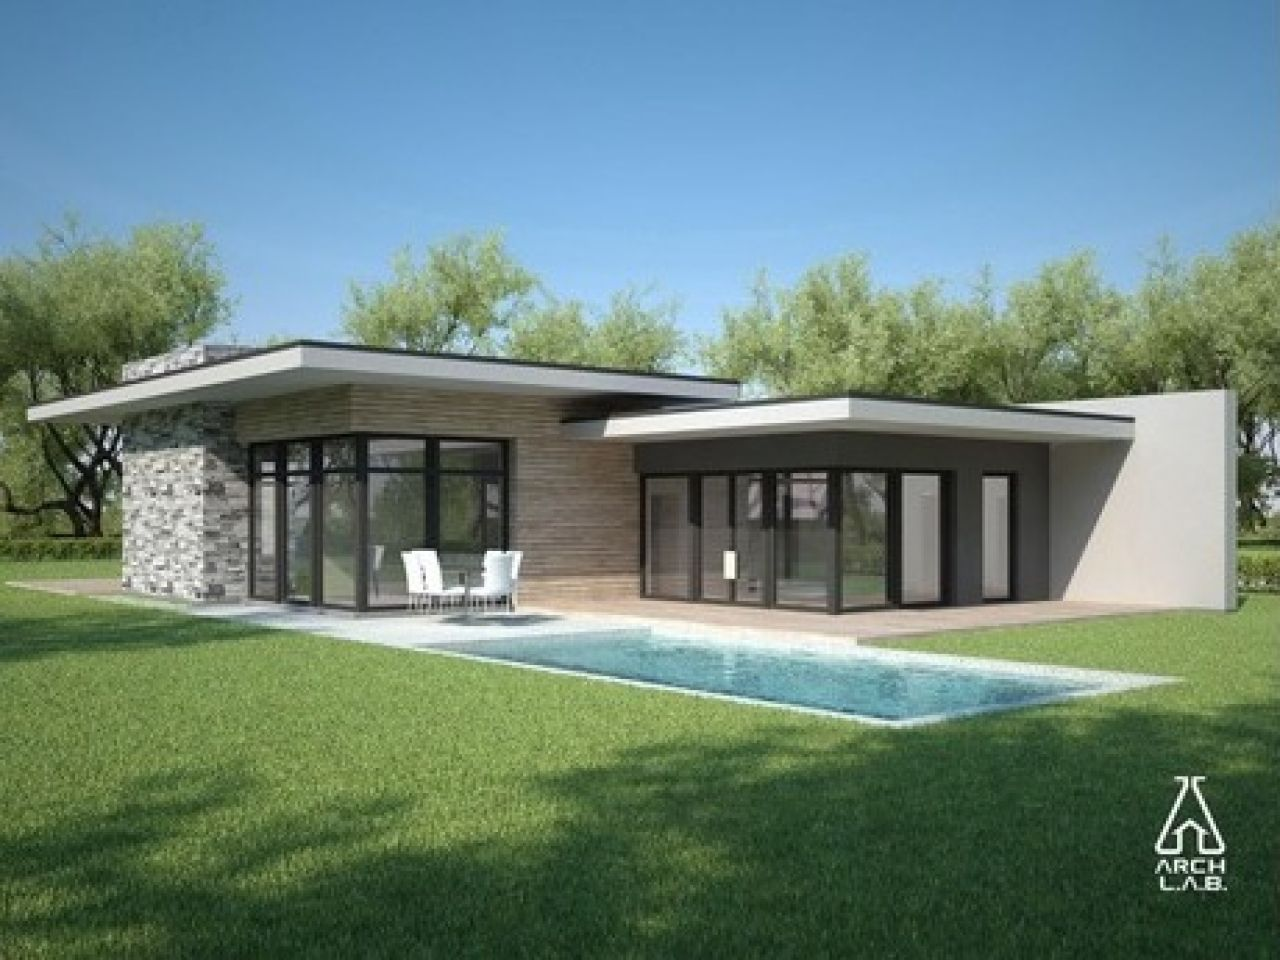 Contemporary Modern Home Plans beach house plans flat design key flat roof style homes flat roof